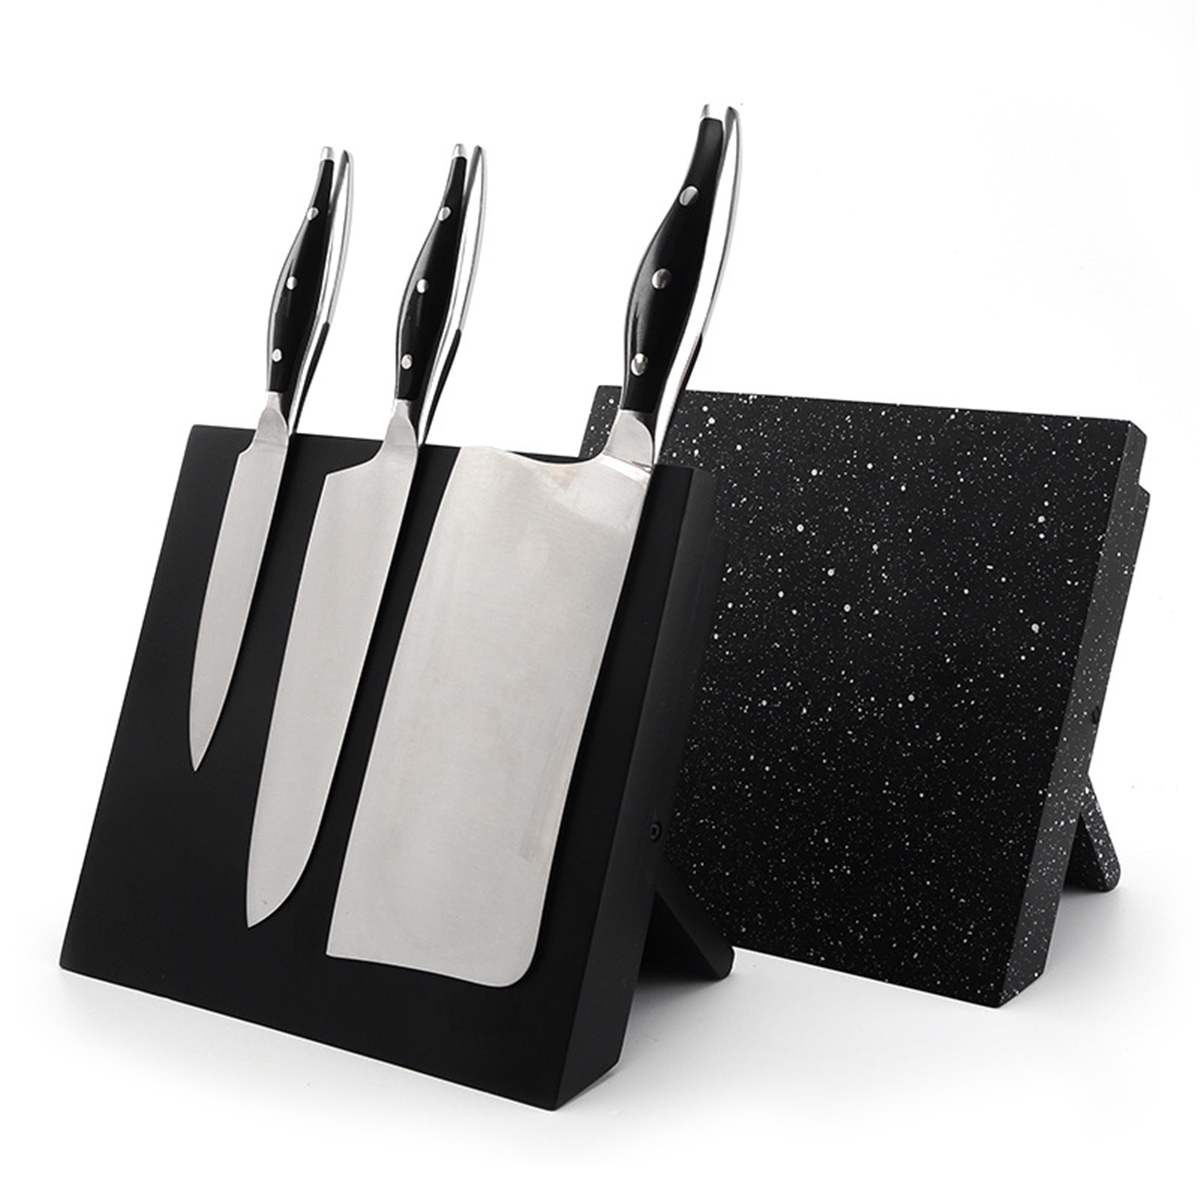 Magnetic Knife Holder Super Adsorption Force Knife Holder Folding Knife Seat Multi-function Magnetic Tool Holder Kitchen